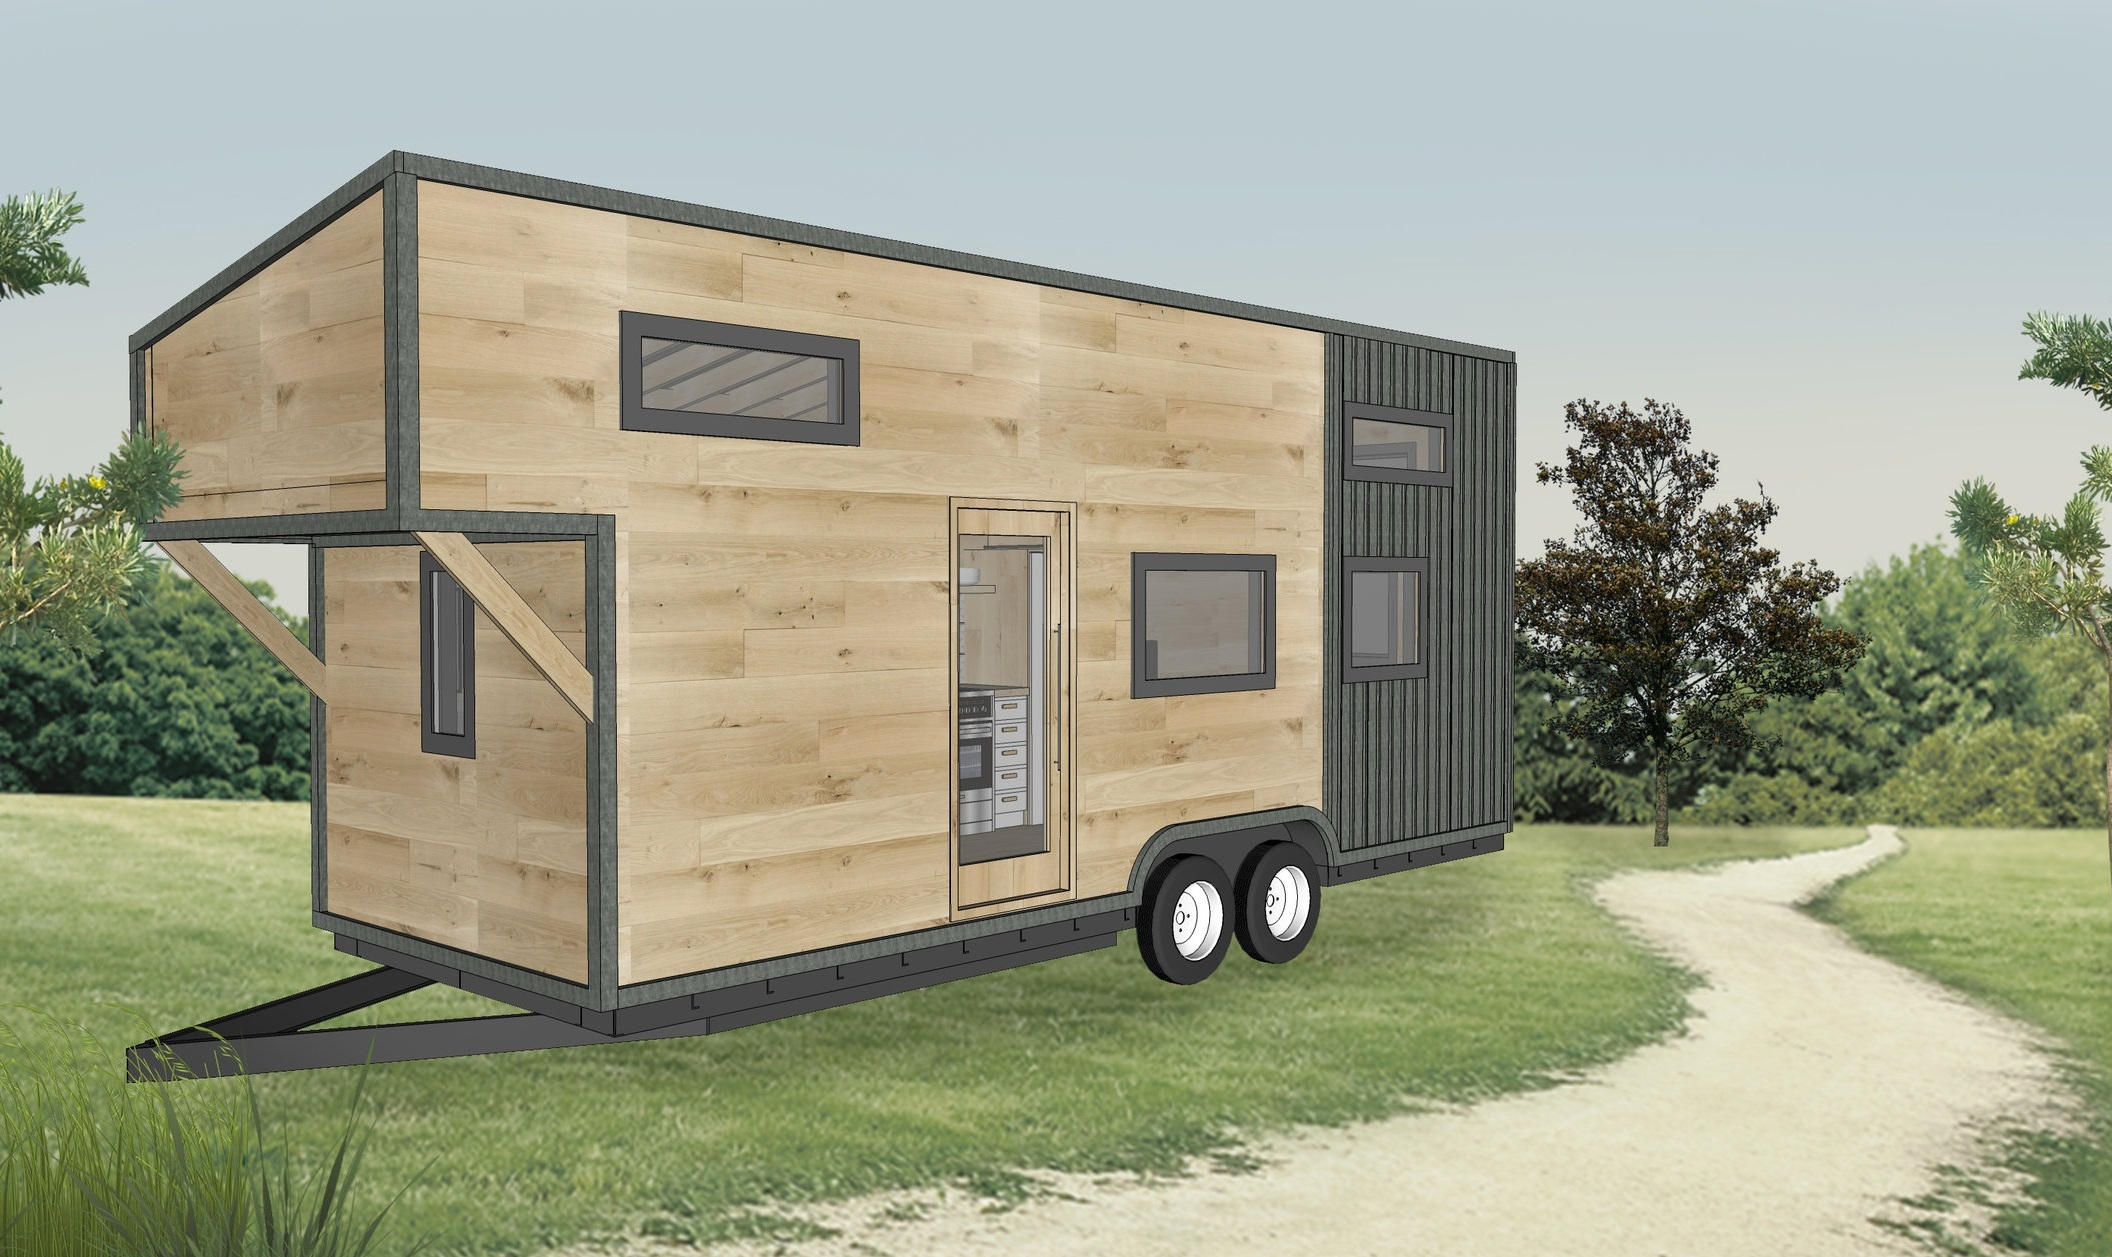 Micro Home - Personal Project